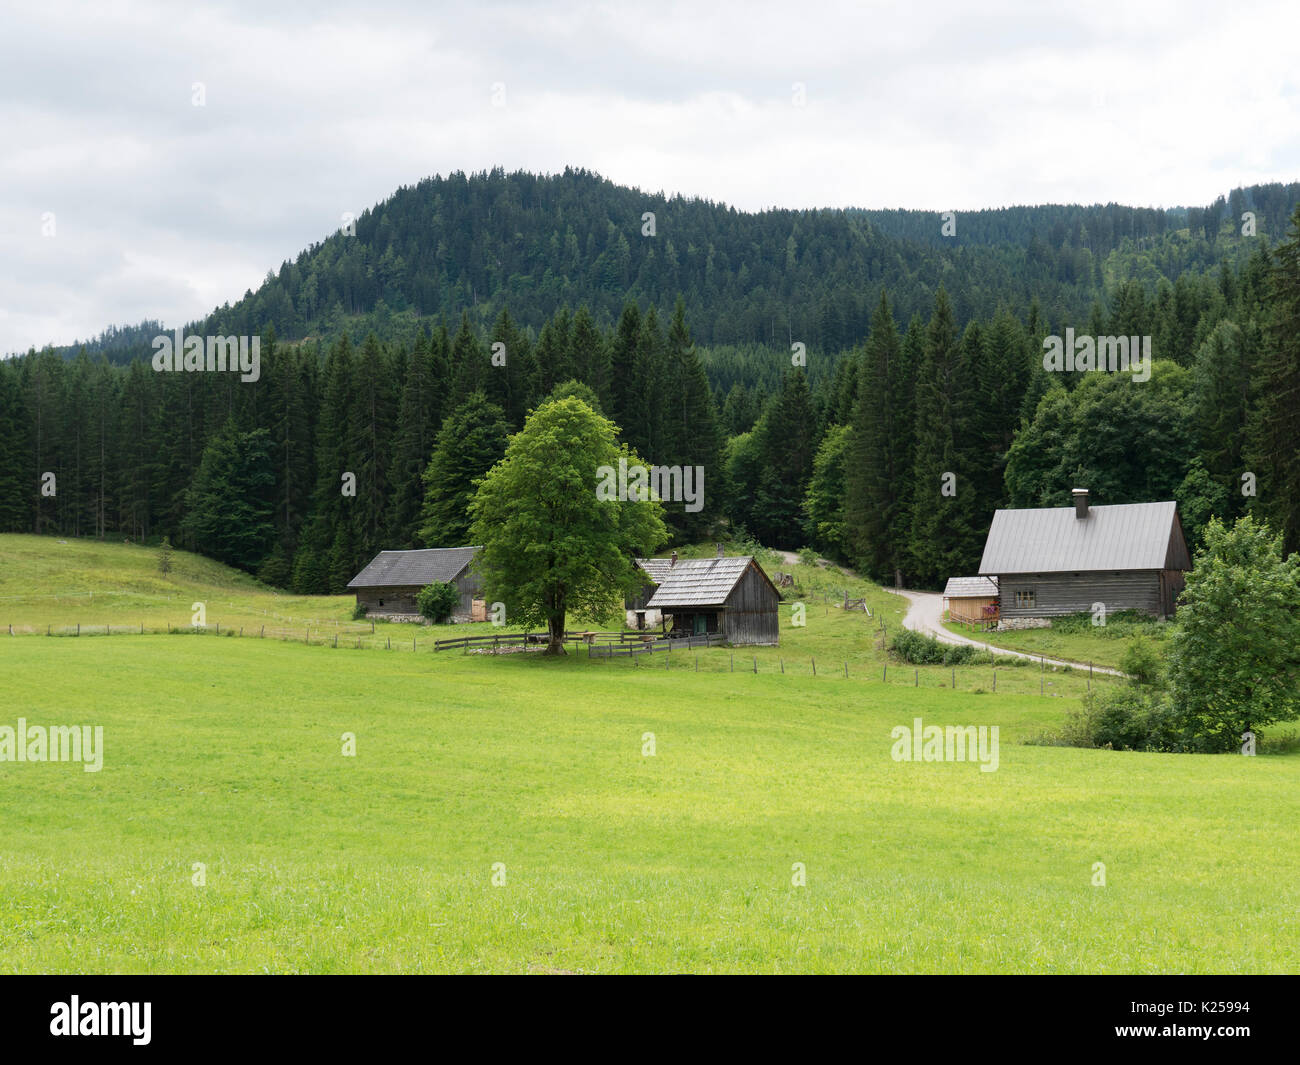 Alpine mountain medieval village. Wooden timbered cottages. Tourist open-air museum, travel destination for holidays. Mountain scenery near Salzburg. - Stock Image